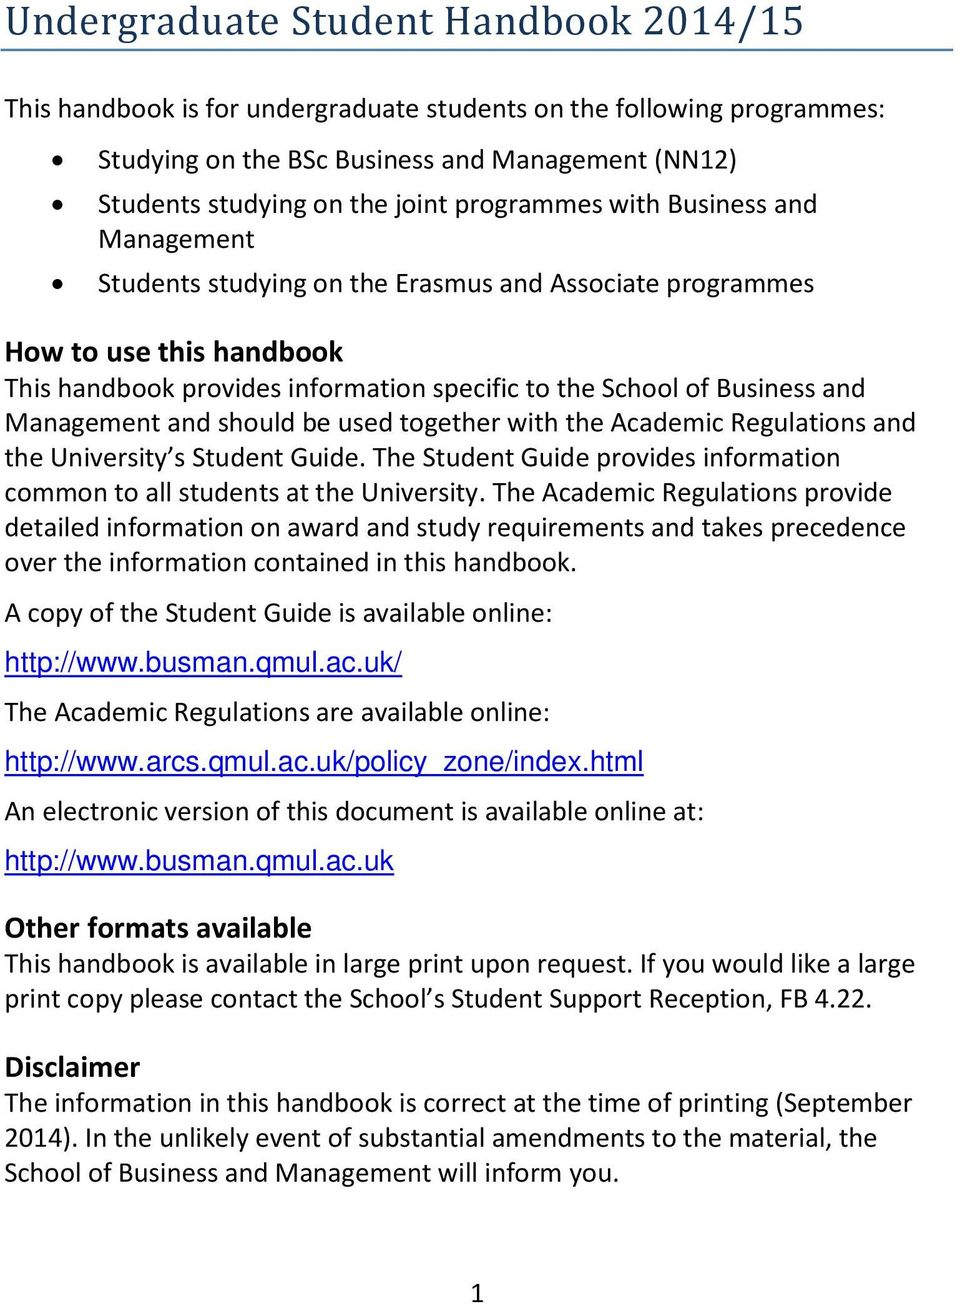 Management and should be used together with the Academic Regulations and the University s Student Guide. The Student Guide provides information common to all students at the University.